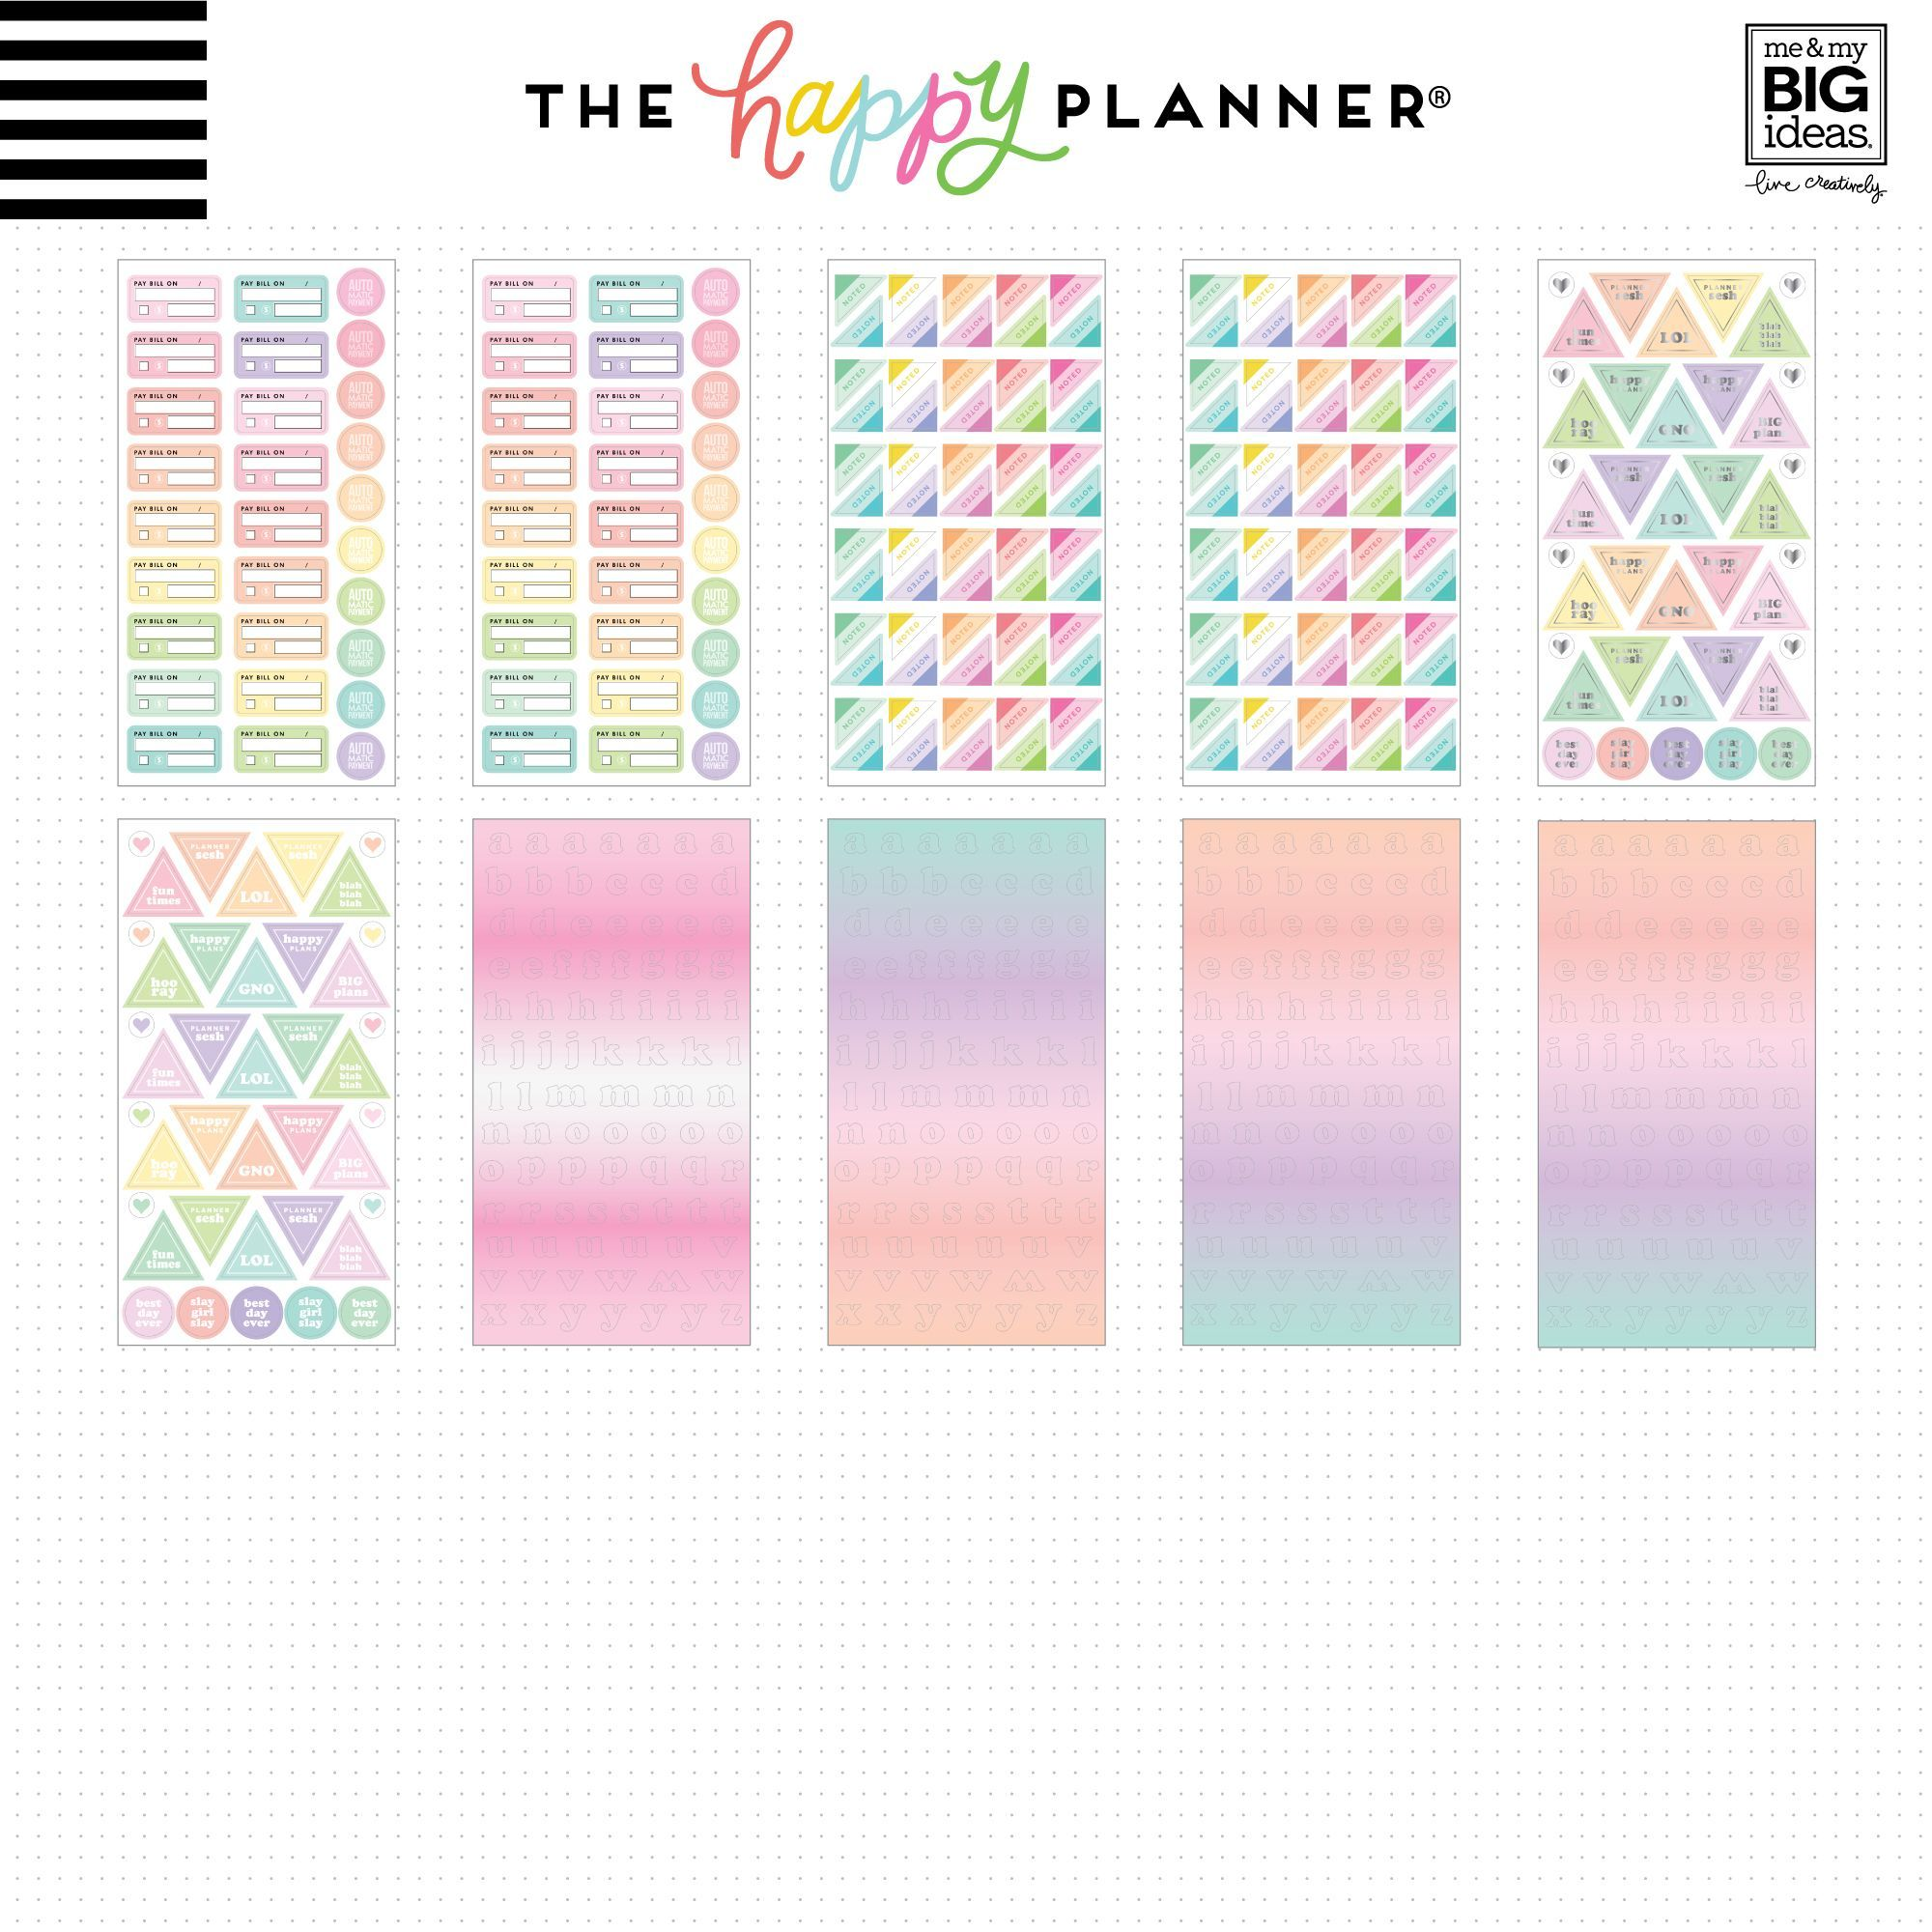 Pastel Mega Book NEW RELEASE The Happy Planner Stickers 2956 Pieces